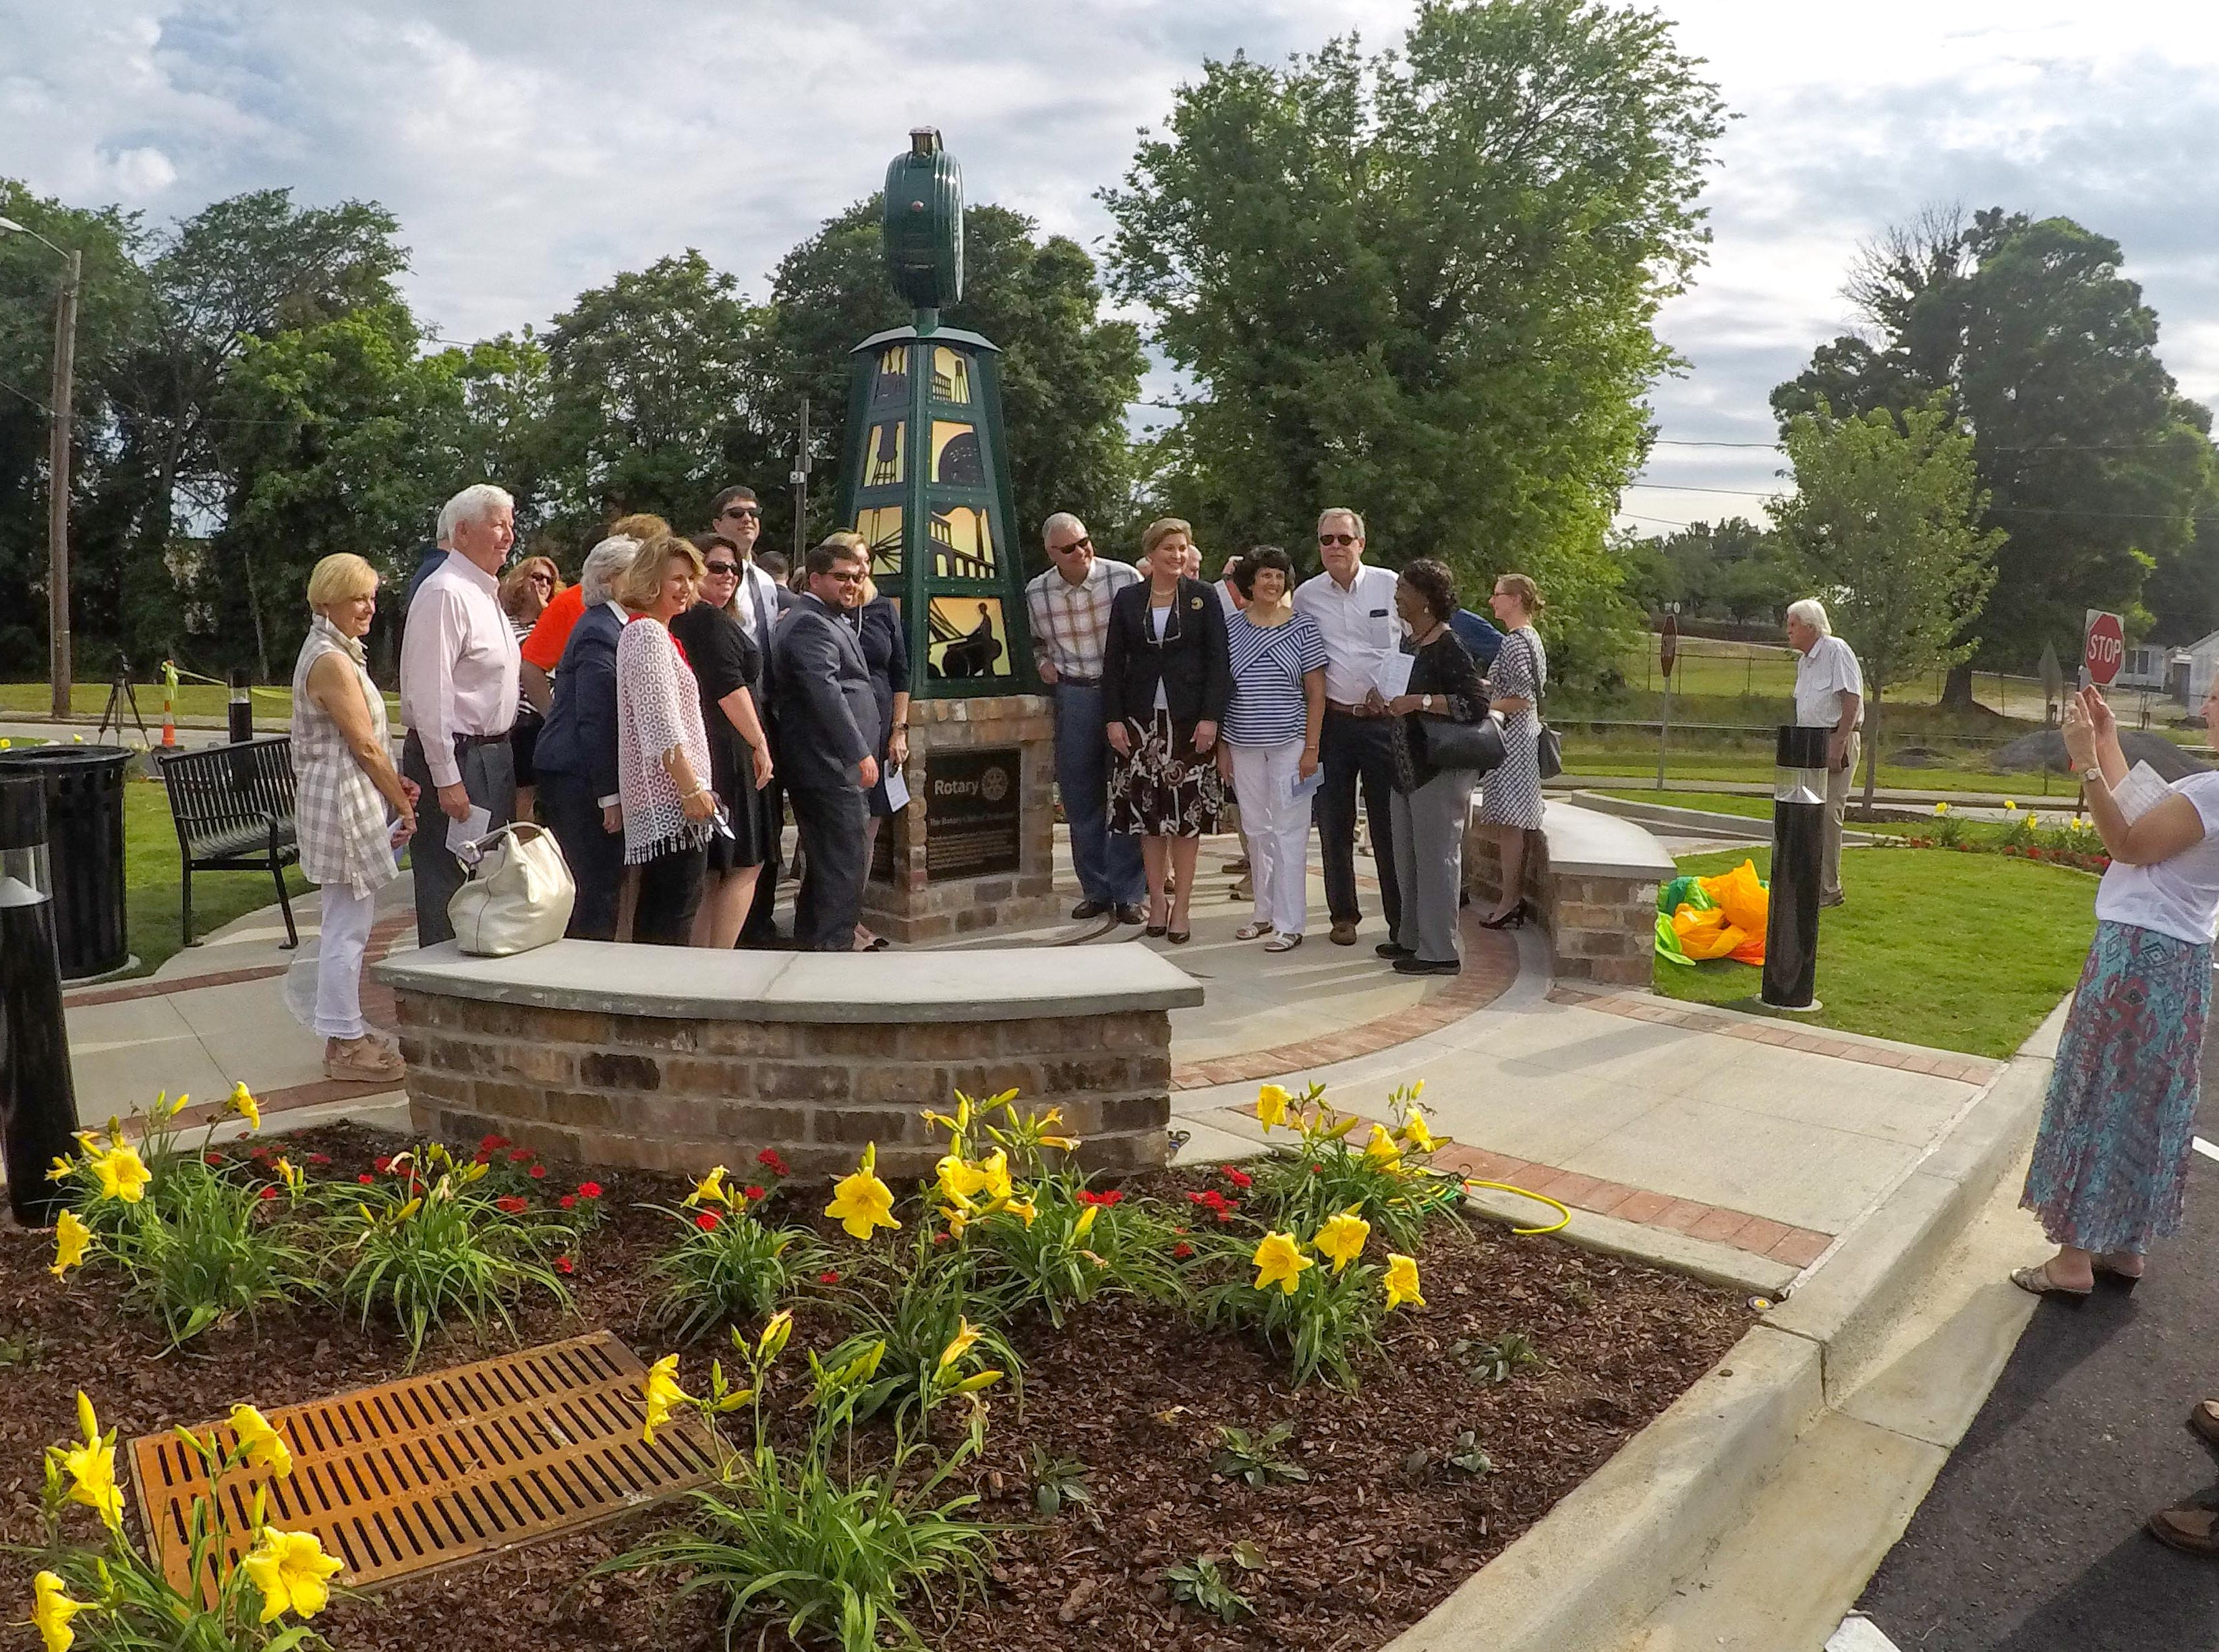 The Rotary Club of Anderson pose for a photo after watching Anderson officials unveil the Under the bridge project called Textile Point in downtown Anderson Thursday, May 9, 2019. Scott Foster of Anderson designed the monument honoring years of textile mills in Anderson, with support partners from To Benefit Anderson, South Carolina Heritage Corridor, the Rotary Club of Anderson, and the City of Anderson.